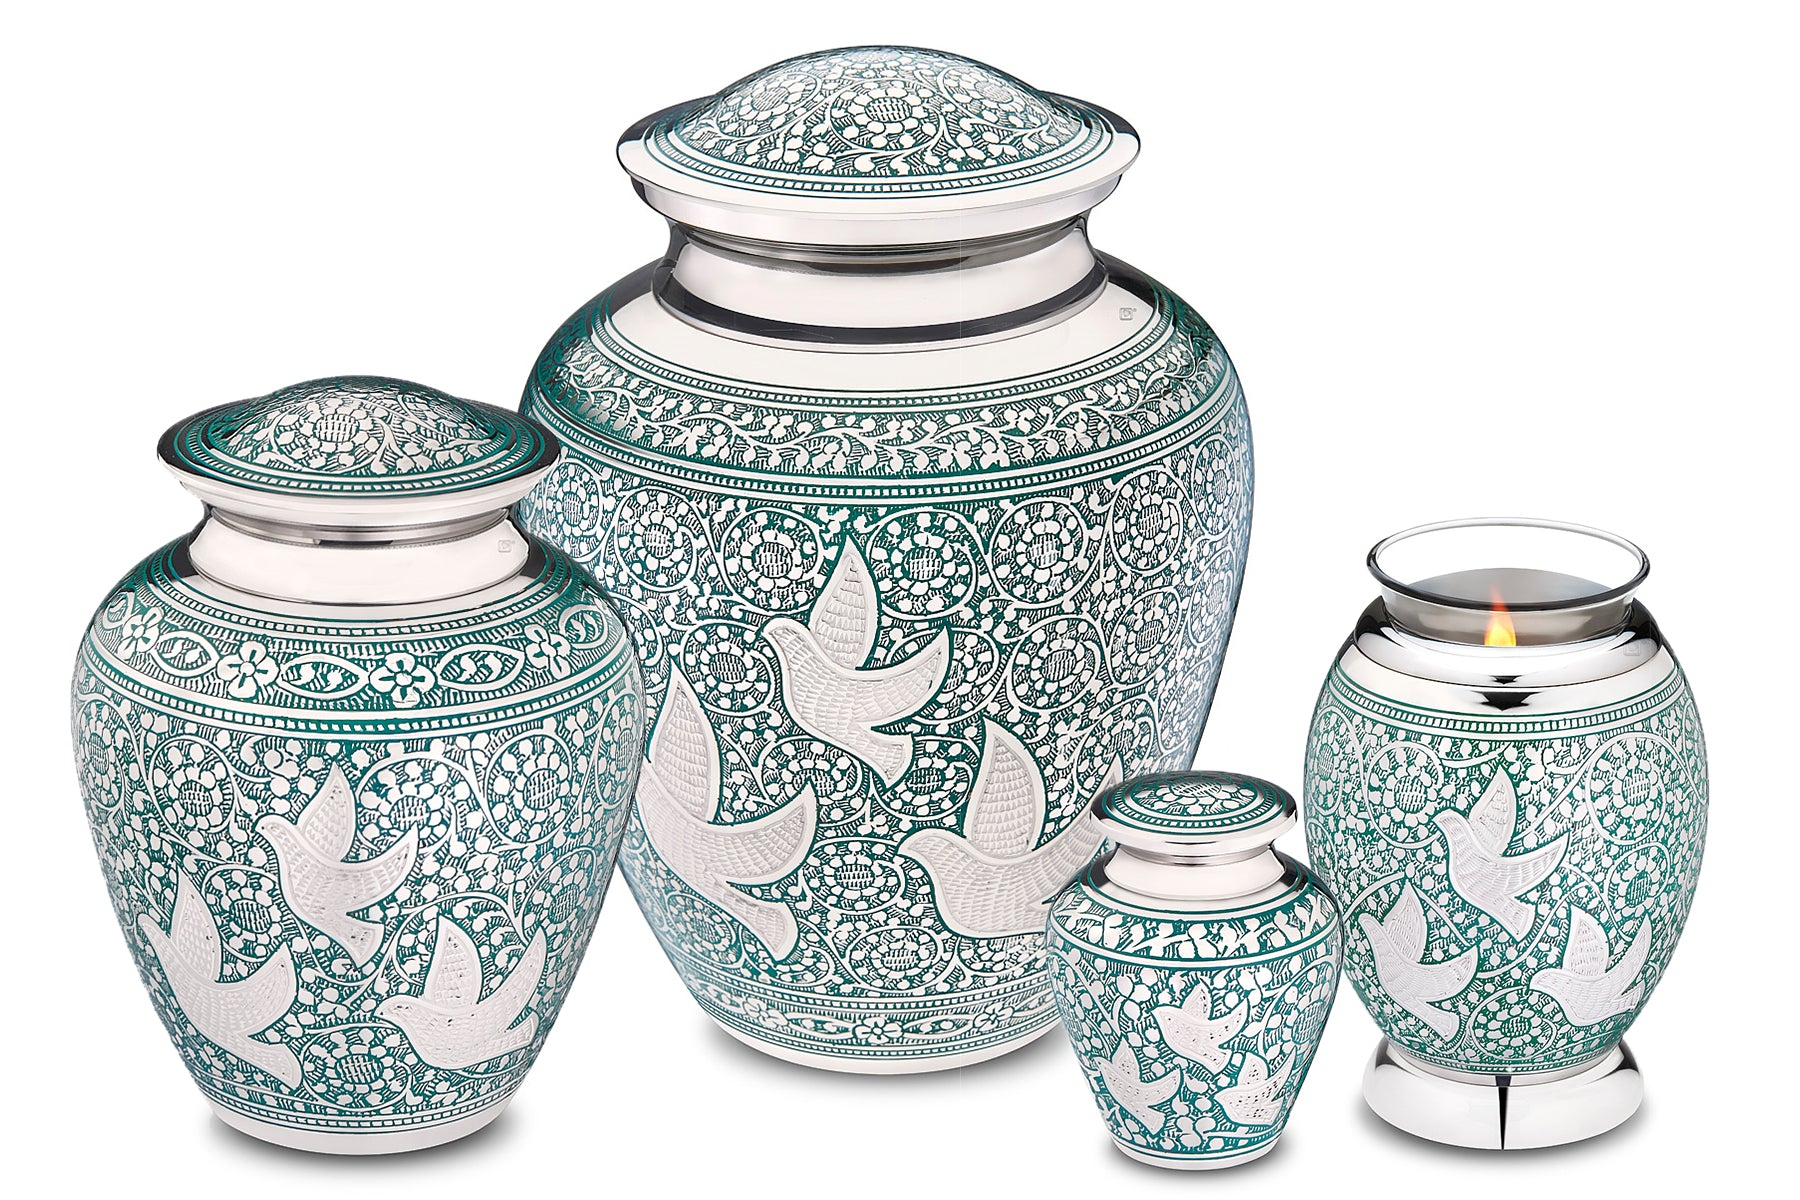 The Beauty and Benefits of Handcrafted Urns